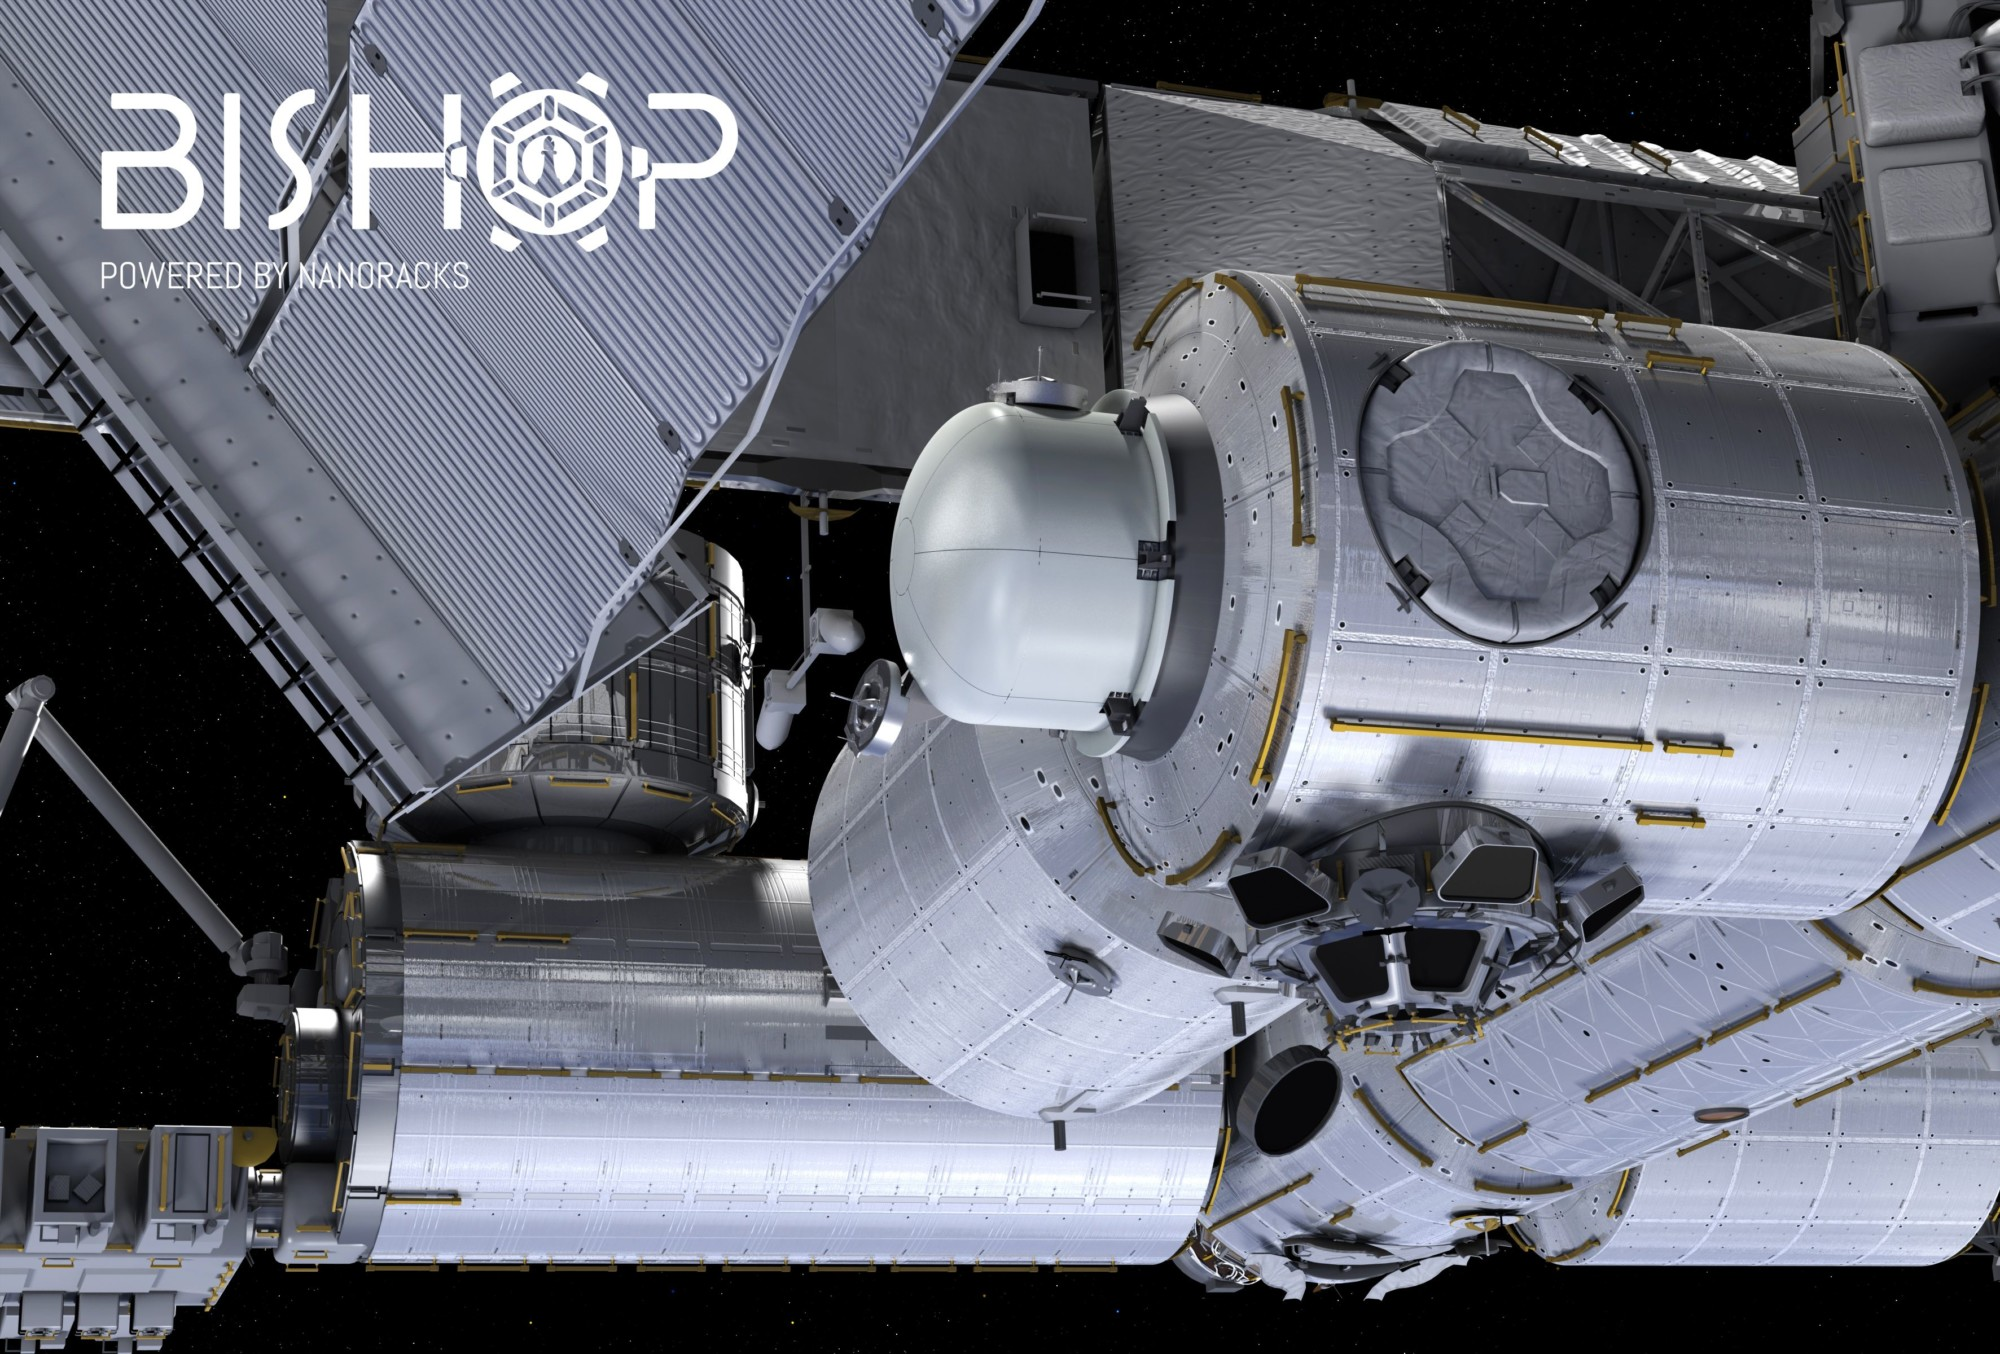 An artist's rendering of the Bishop airlock attached to the Tranquility module. Credit: NanoRacks